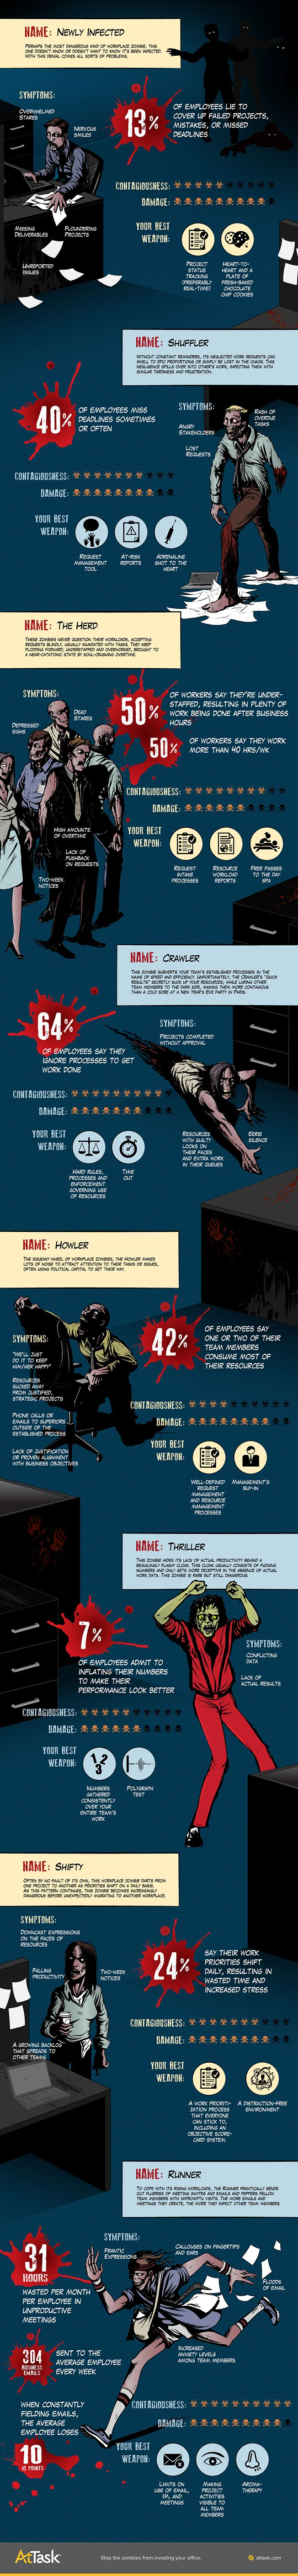 Infographic: 8 Types of 'Working Dead' Zombies Plaguing Your Productivity | Adweek